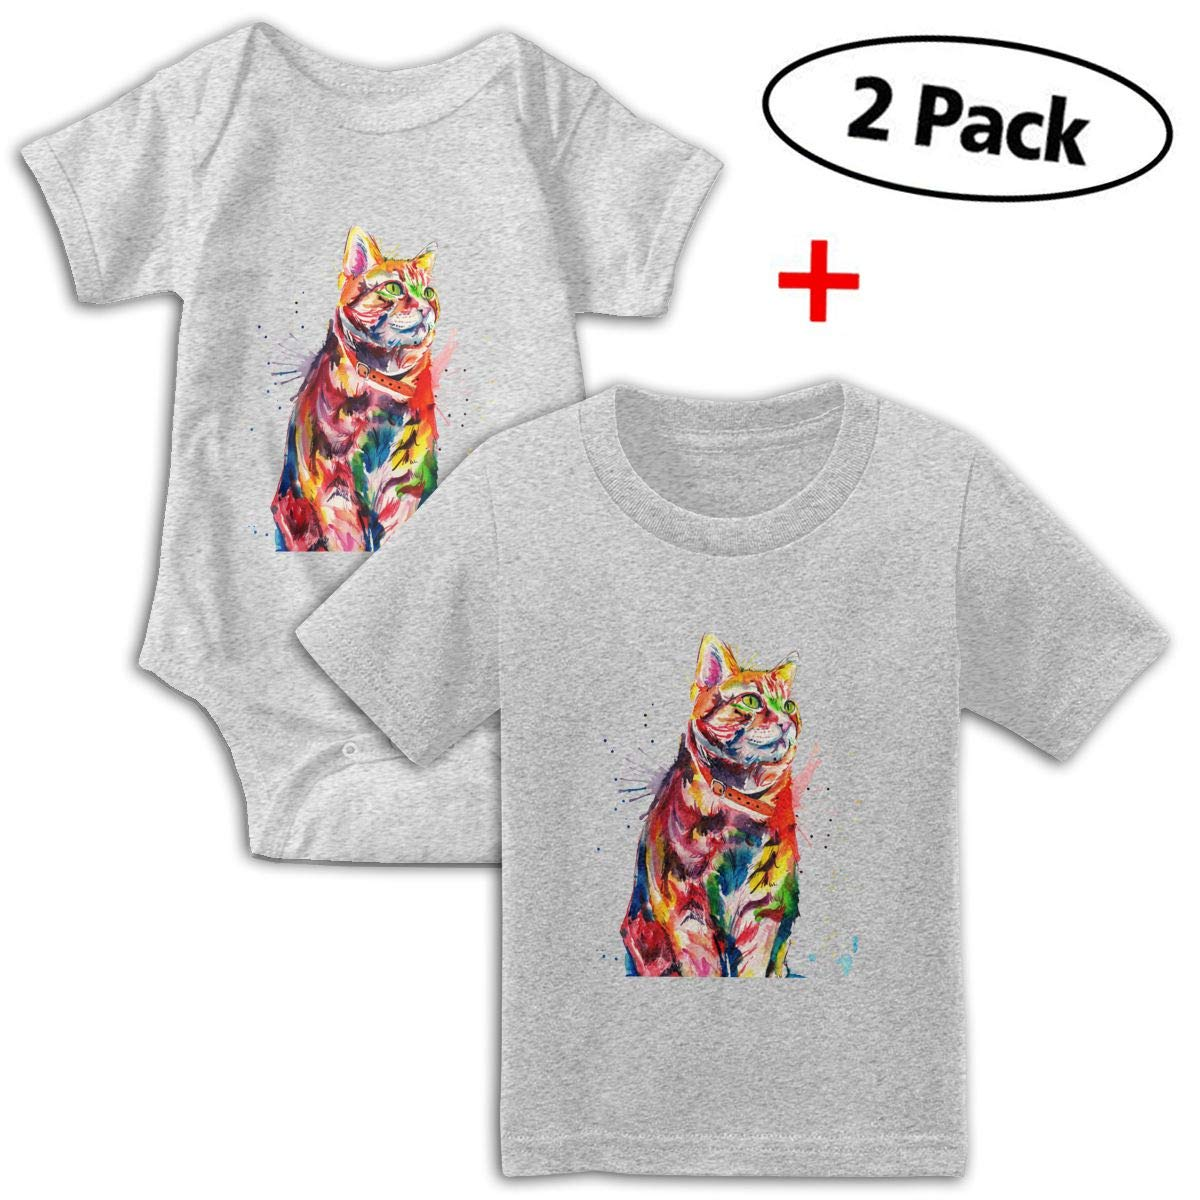 Watercolor Cat Colorful Babys Boys /& Girls Short Sleeve Baby Climbing Clothes and Tshirt